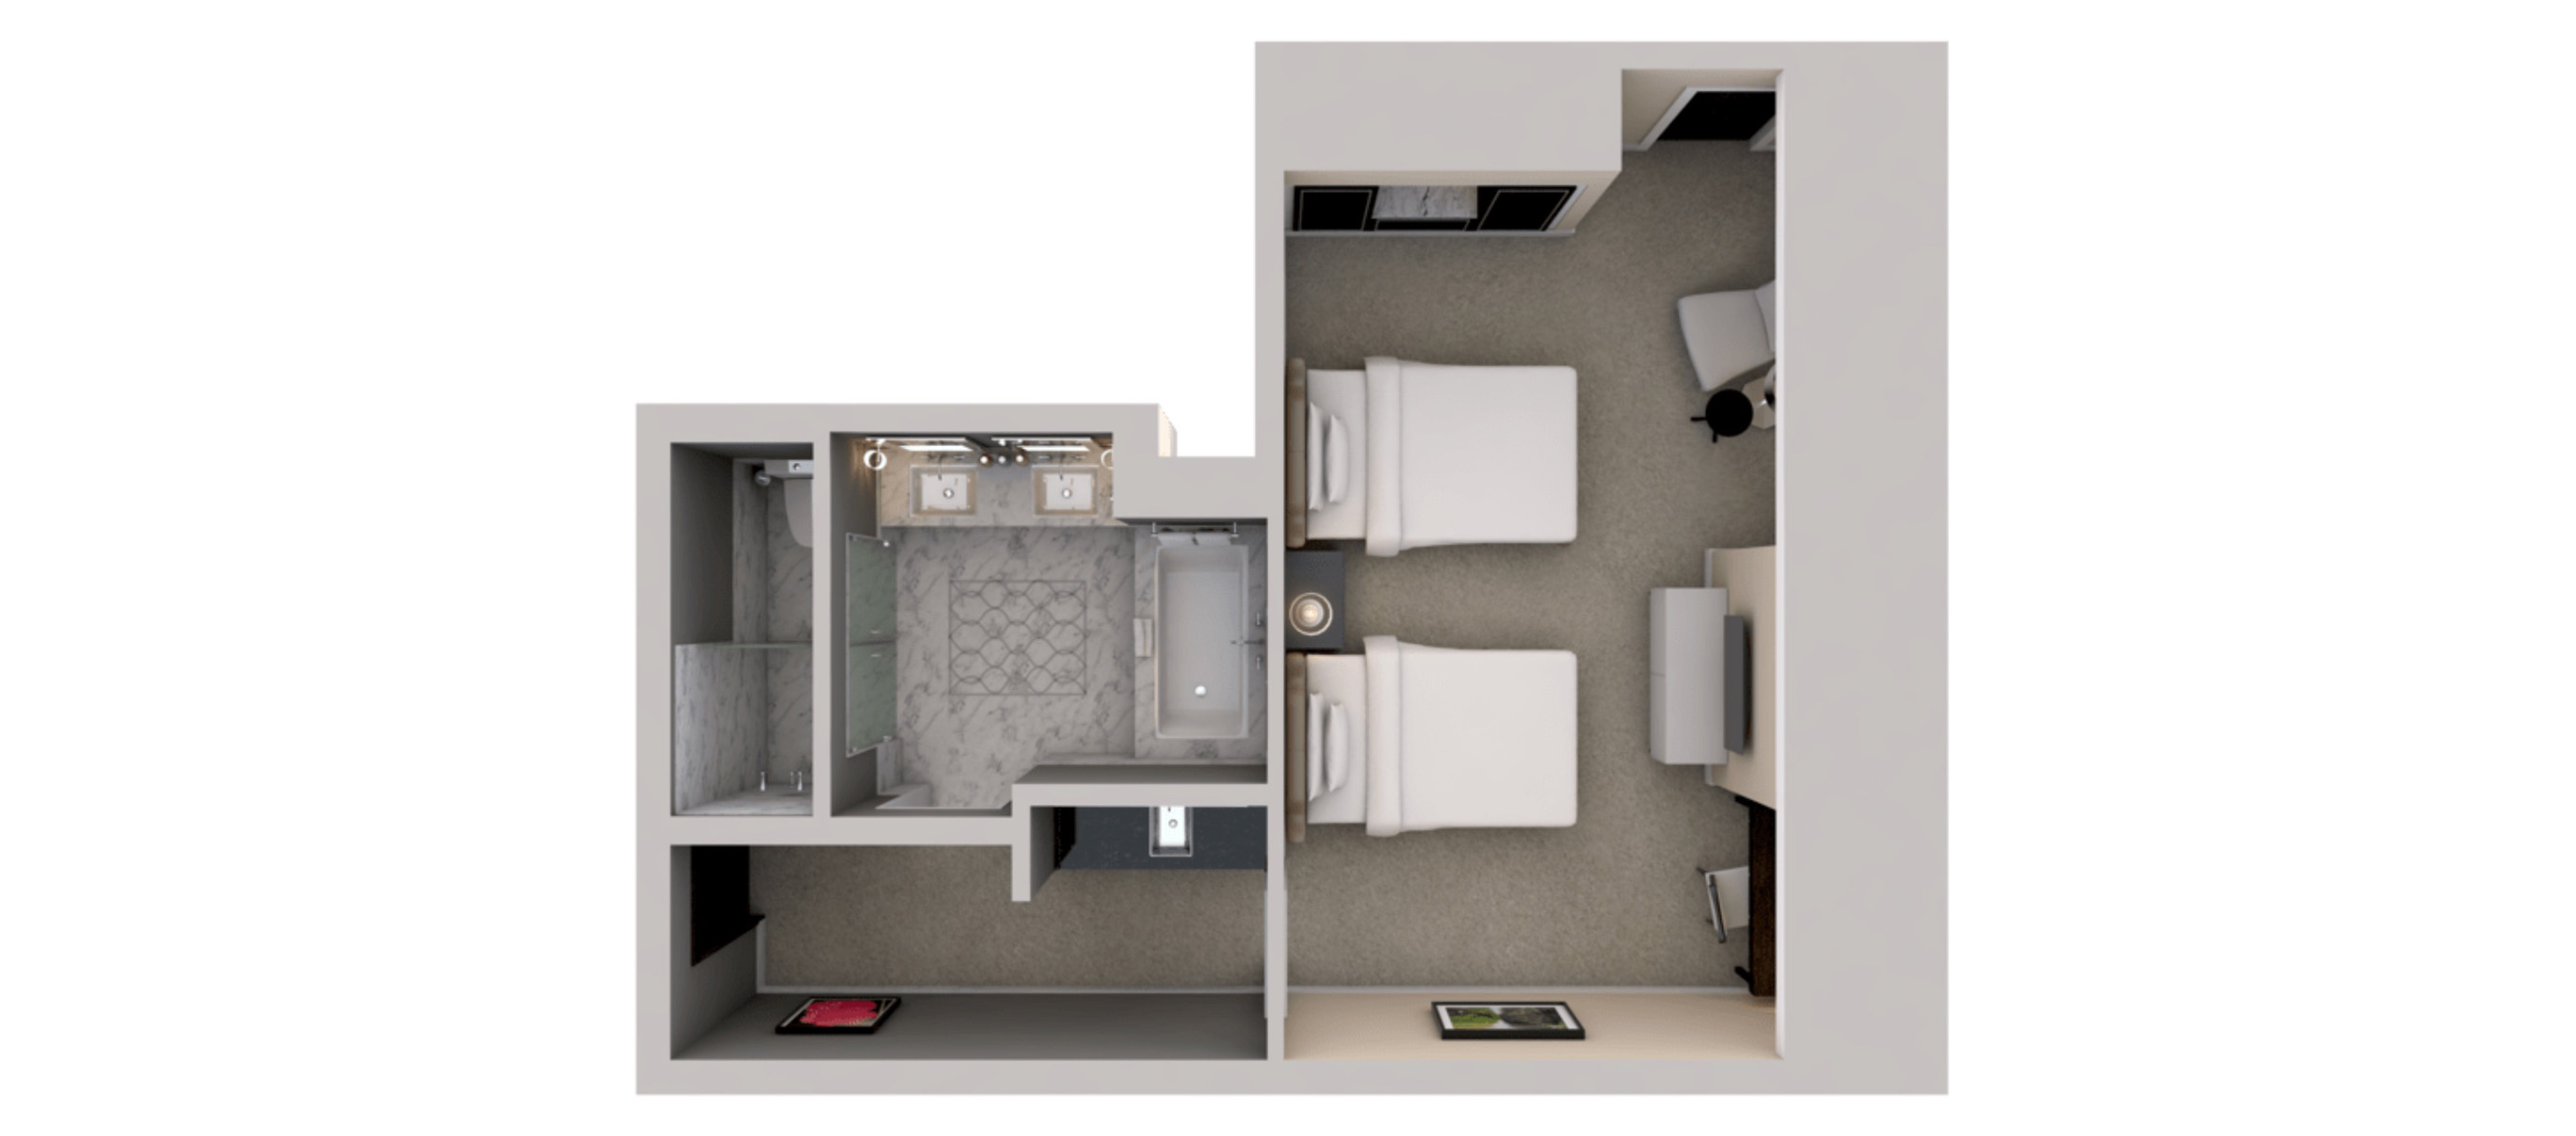 Deluxe Room - Two Queen Beds Floorplan